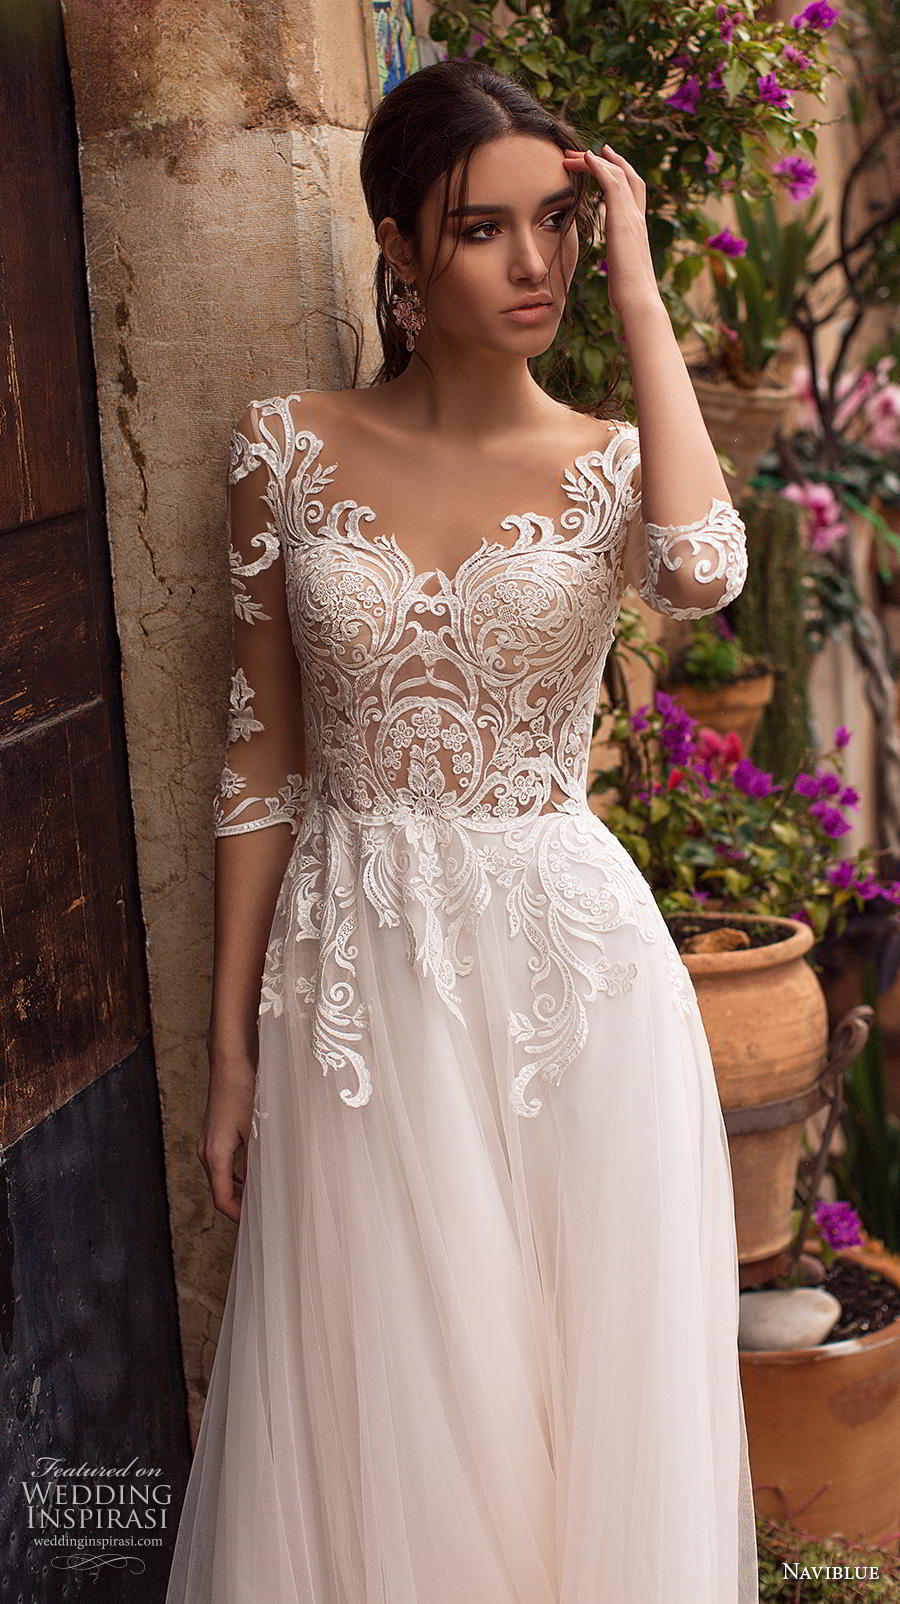 naviblue 2019 bridal half sleeves scoop neckline heavily embellished bodice romantic a  line wedding dress lace back sweep train (2) zv